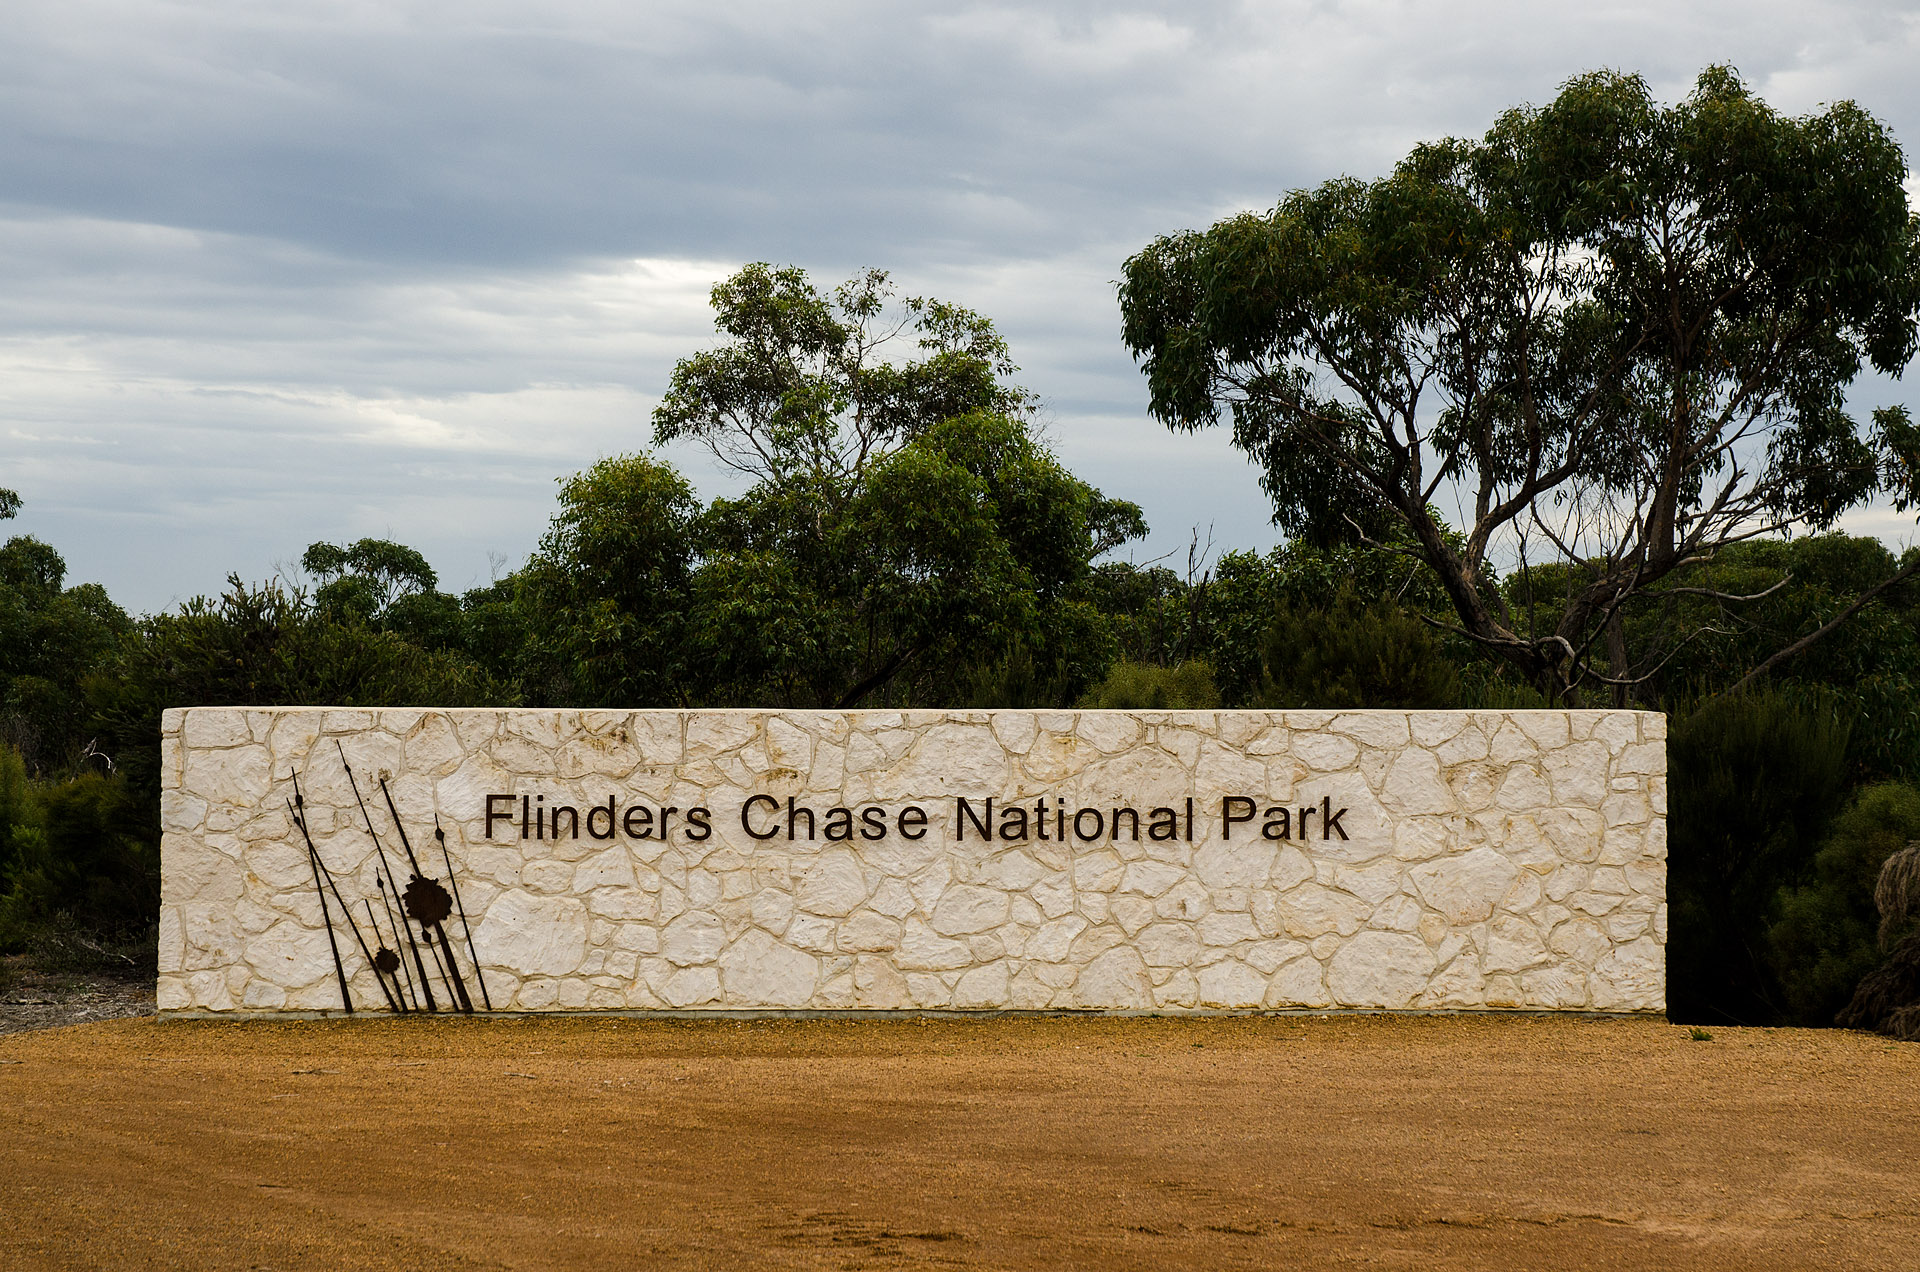 Flinders Chase National Park